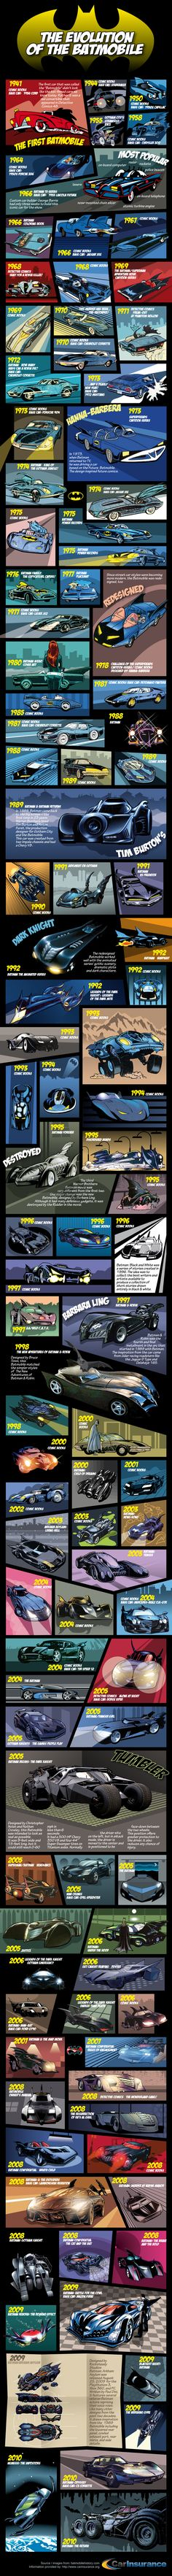 Los autos de Batman